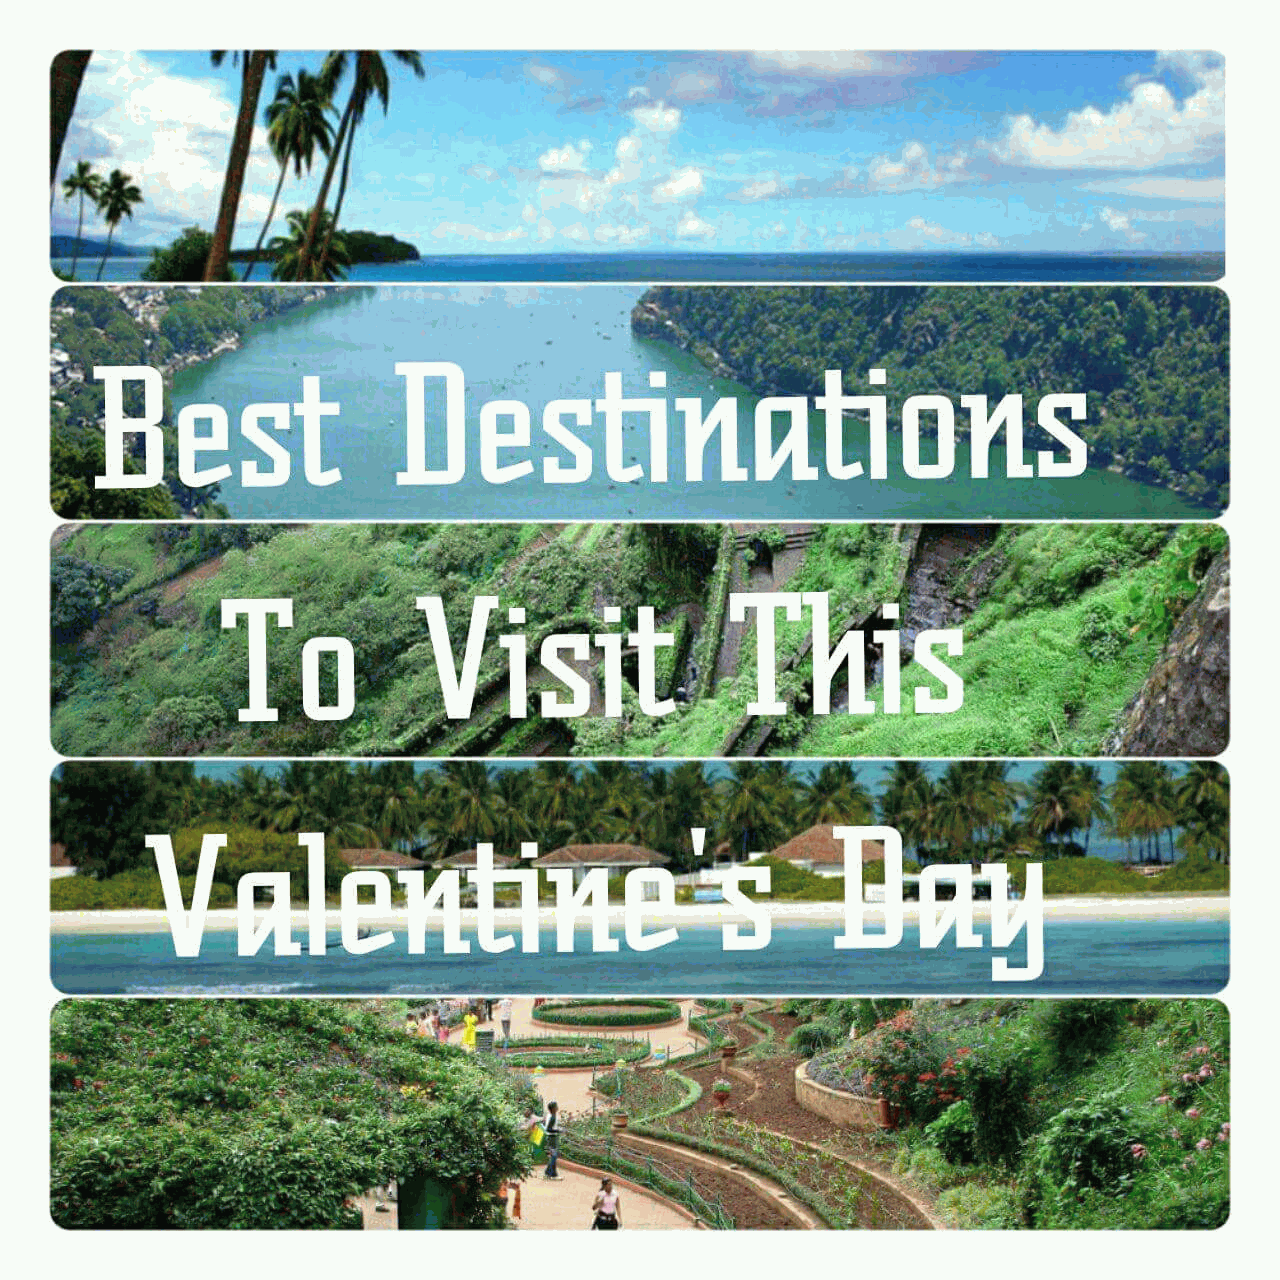 18 Best Destinations to Visit this Valentine's Day | India